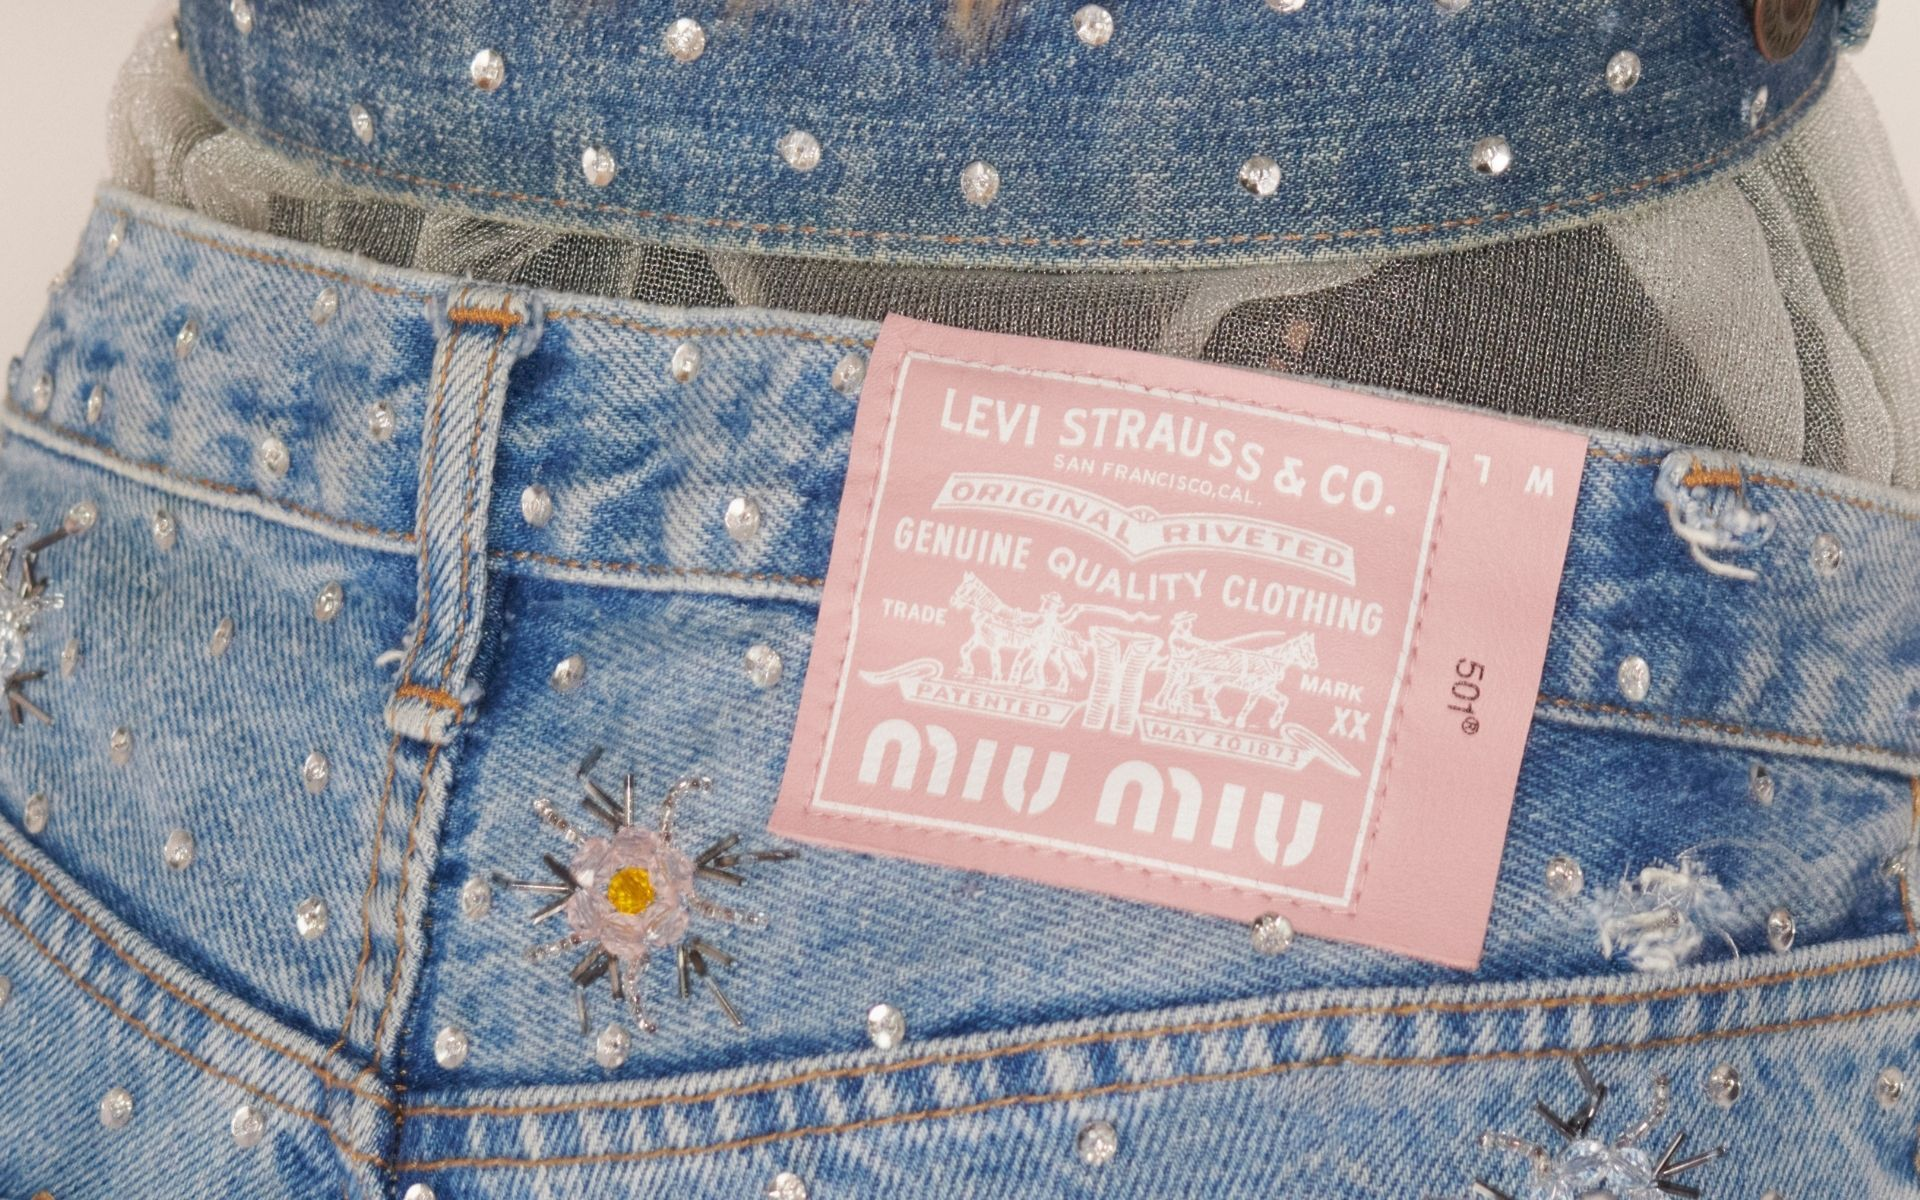 The iconic Levi's® backpatch is re-invented in Miu Miu pink, featuring both logos side by side.